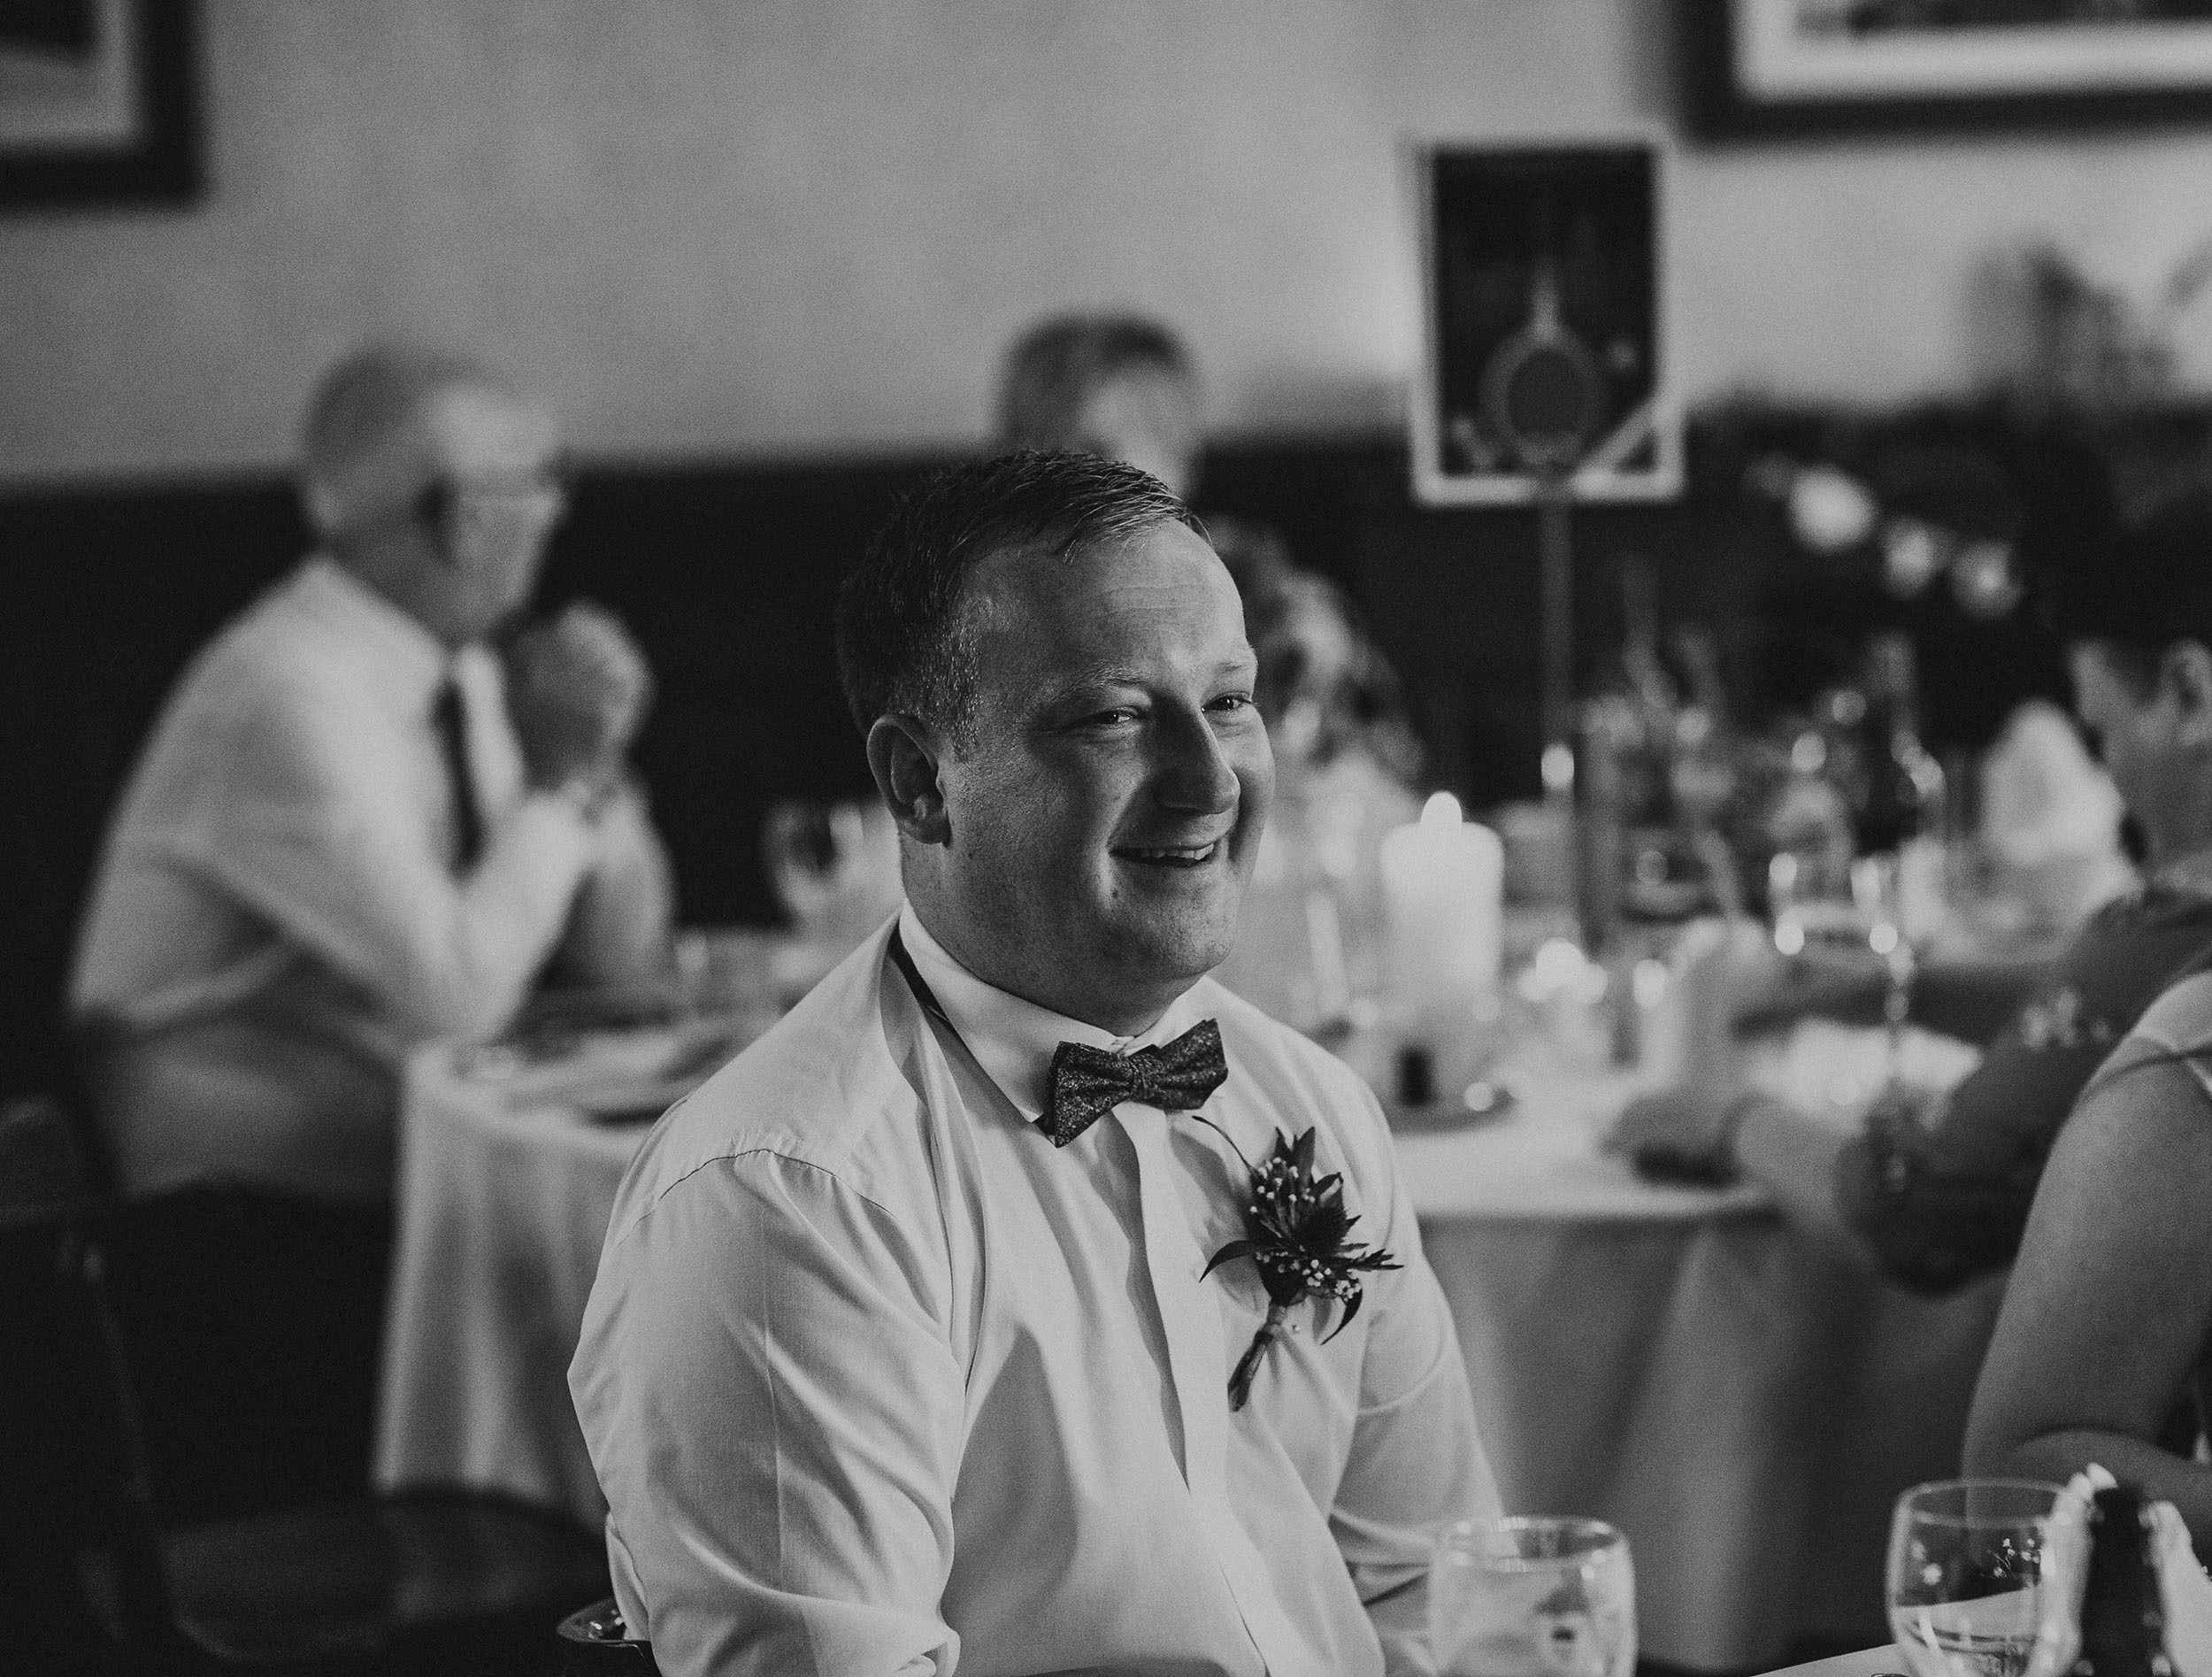 SAME_SEX_WEDDING_PHOTOGRAPHER_SLOANS_GLASGOW_PJ_PHILLIPS_PHOTOGRAPHY_76.jpg